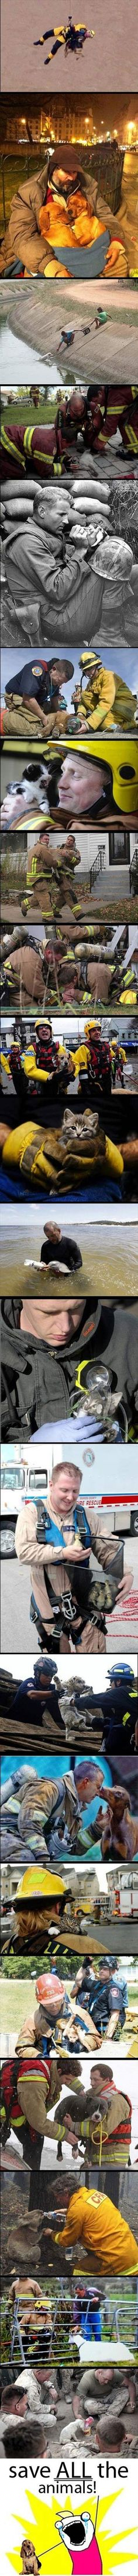 Animal Rescue At It's Finest - 23 Pics - Dump A Day